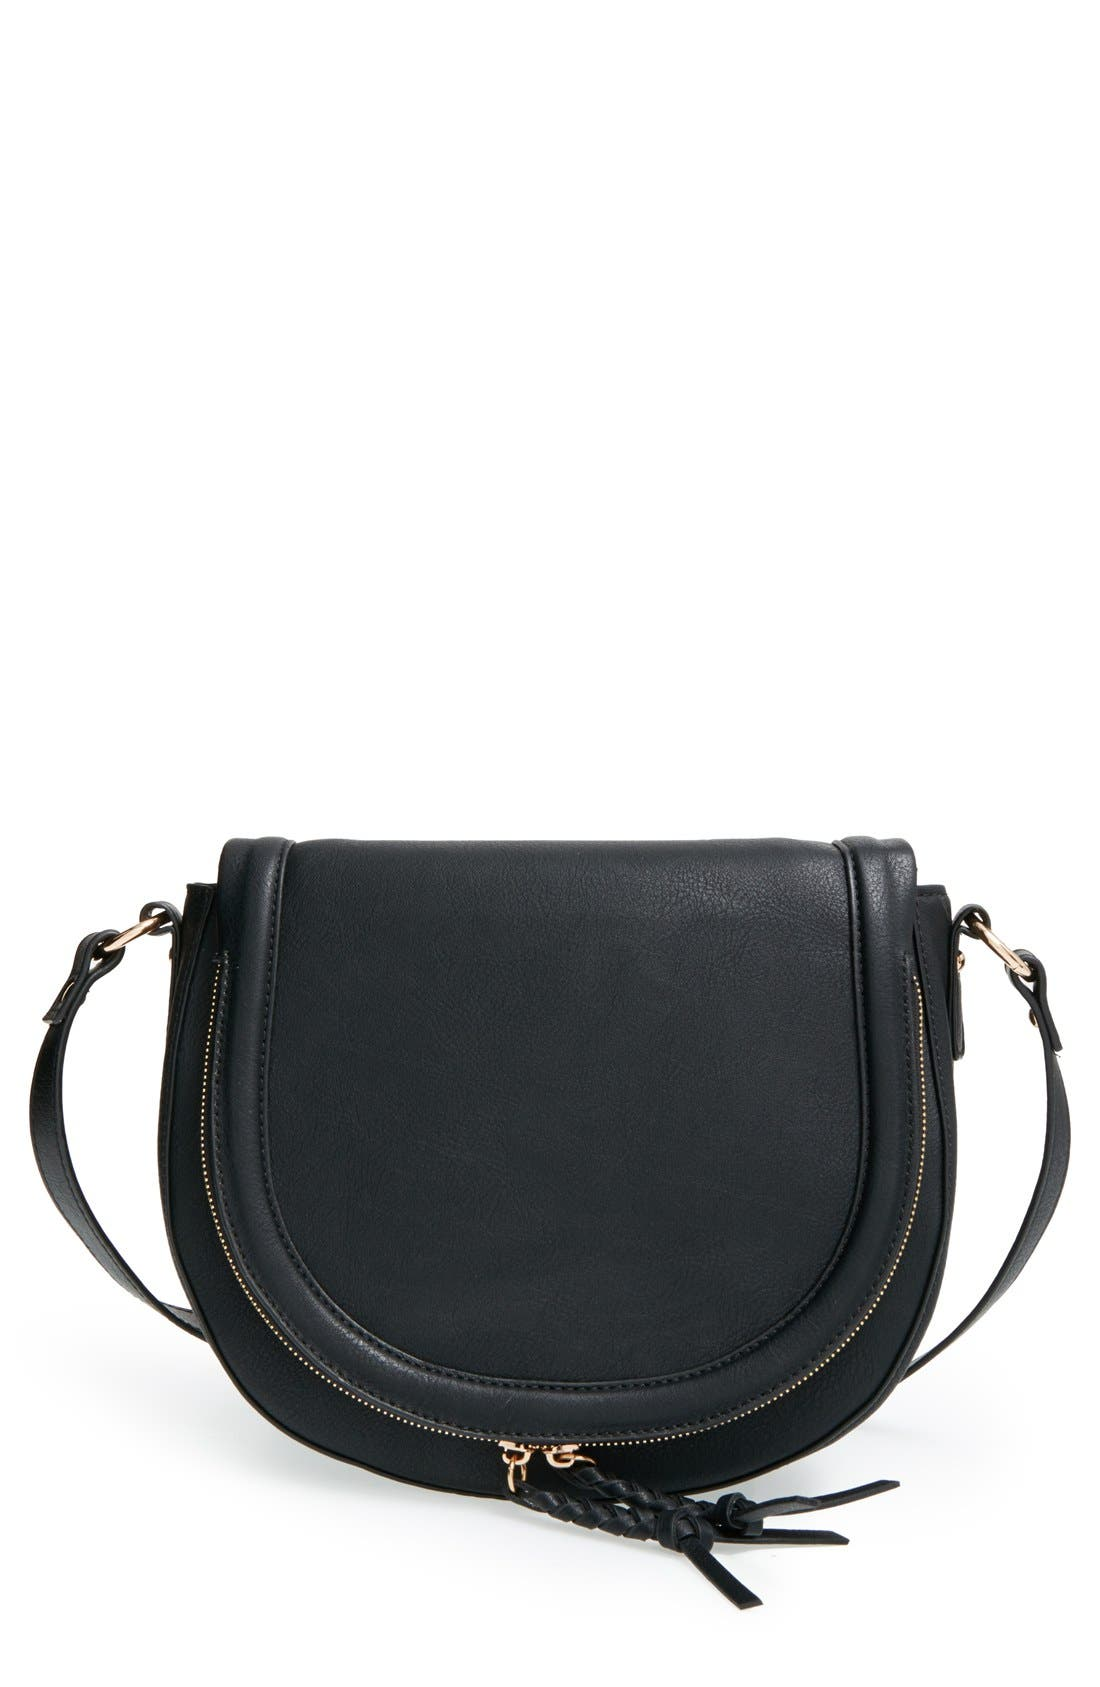 'Thalia' Crossbody Bag,                             Main thumbnail 1, color,                             001